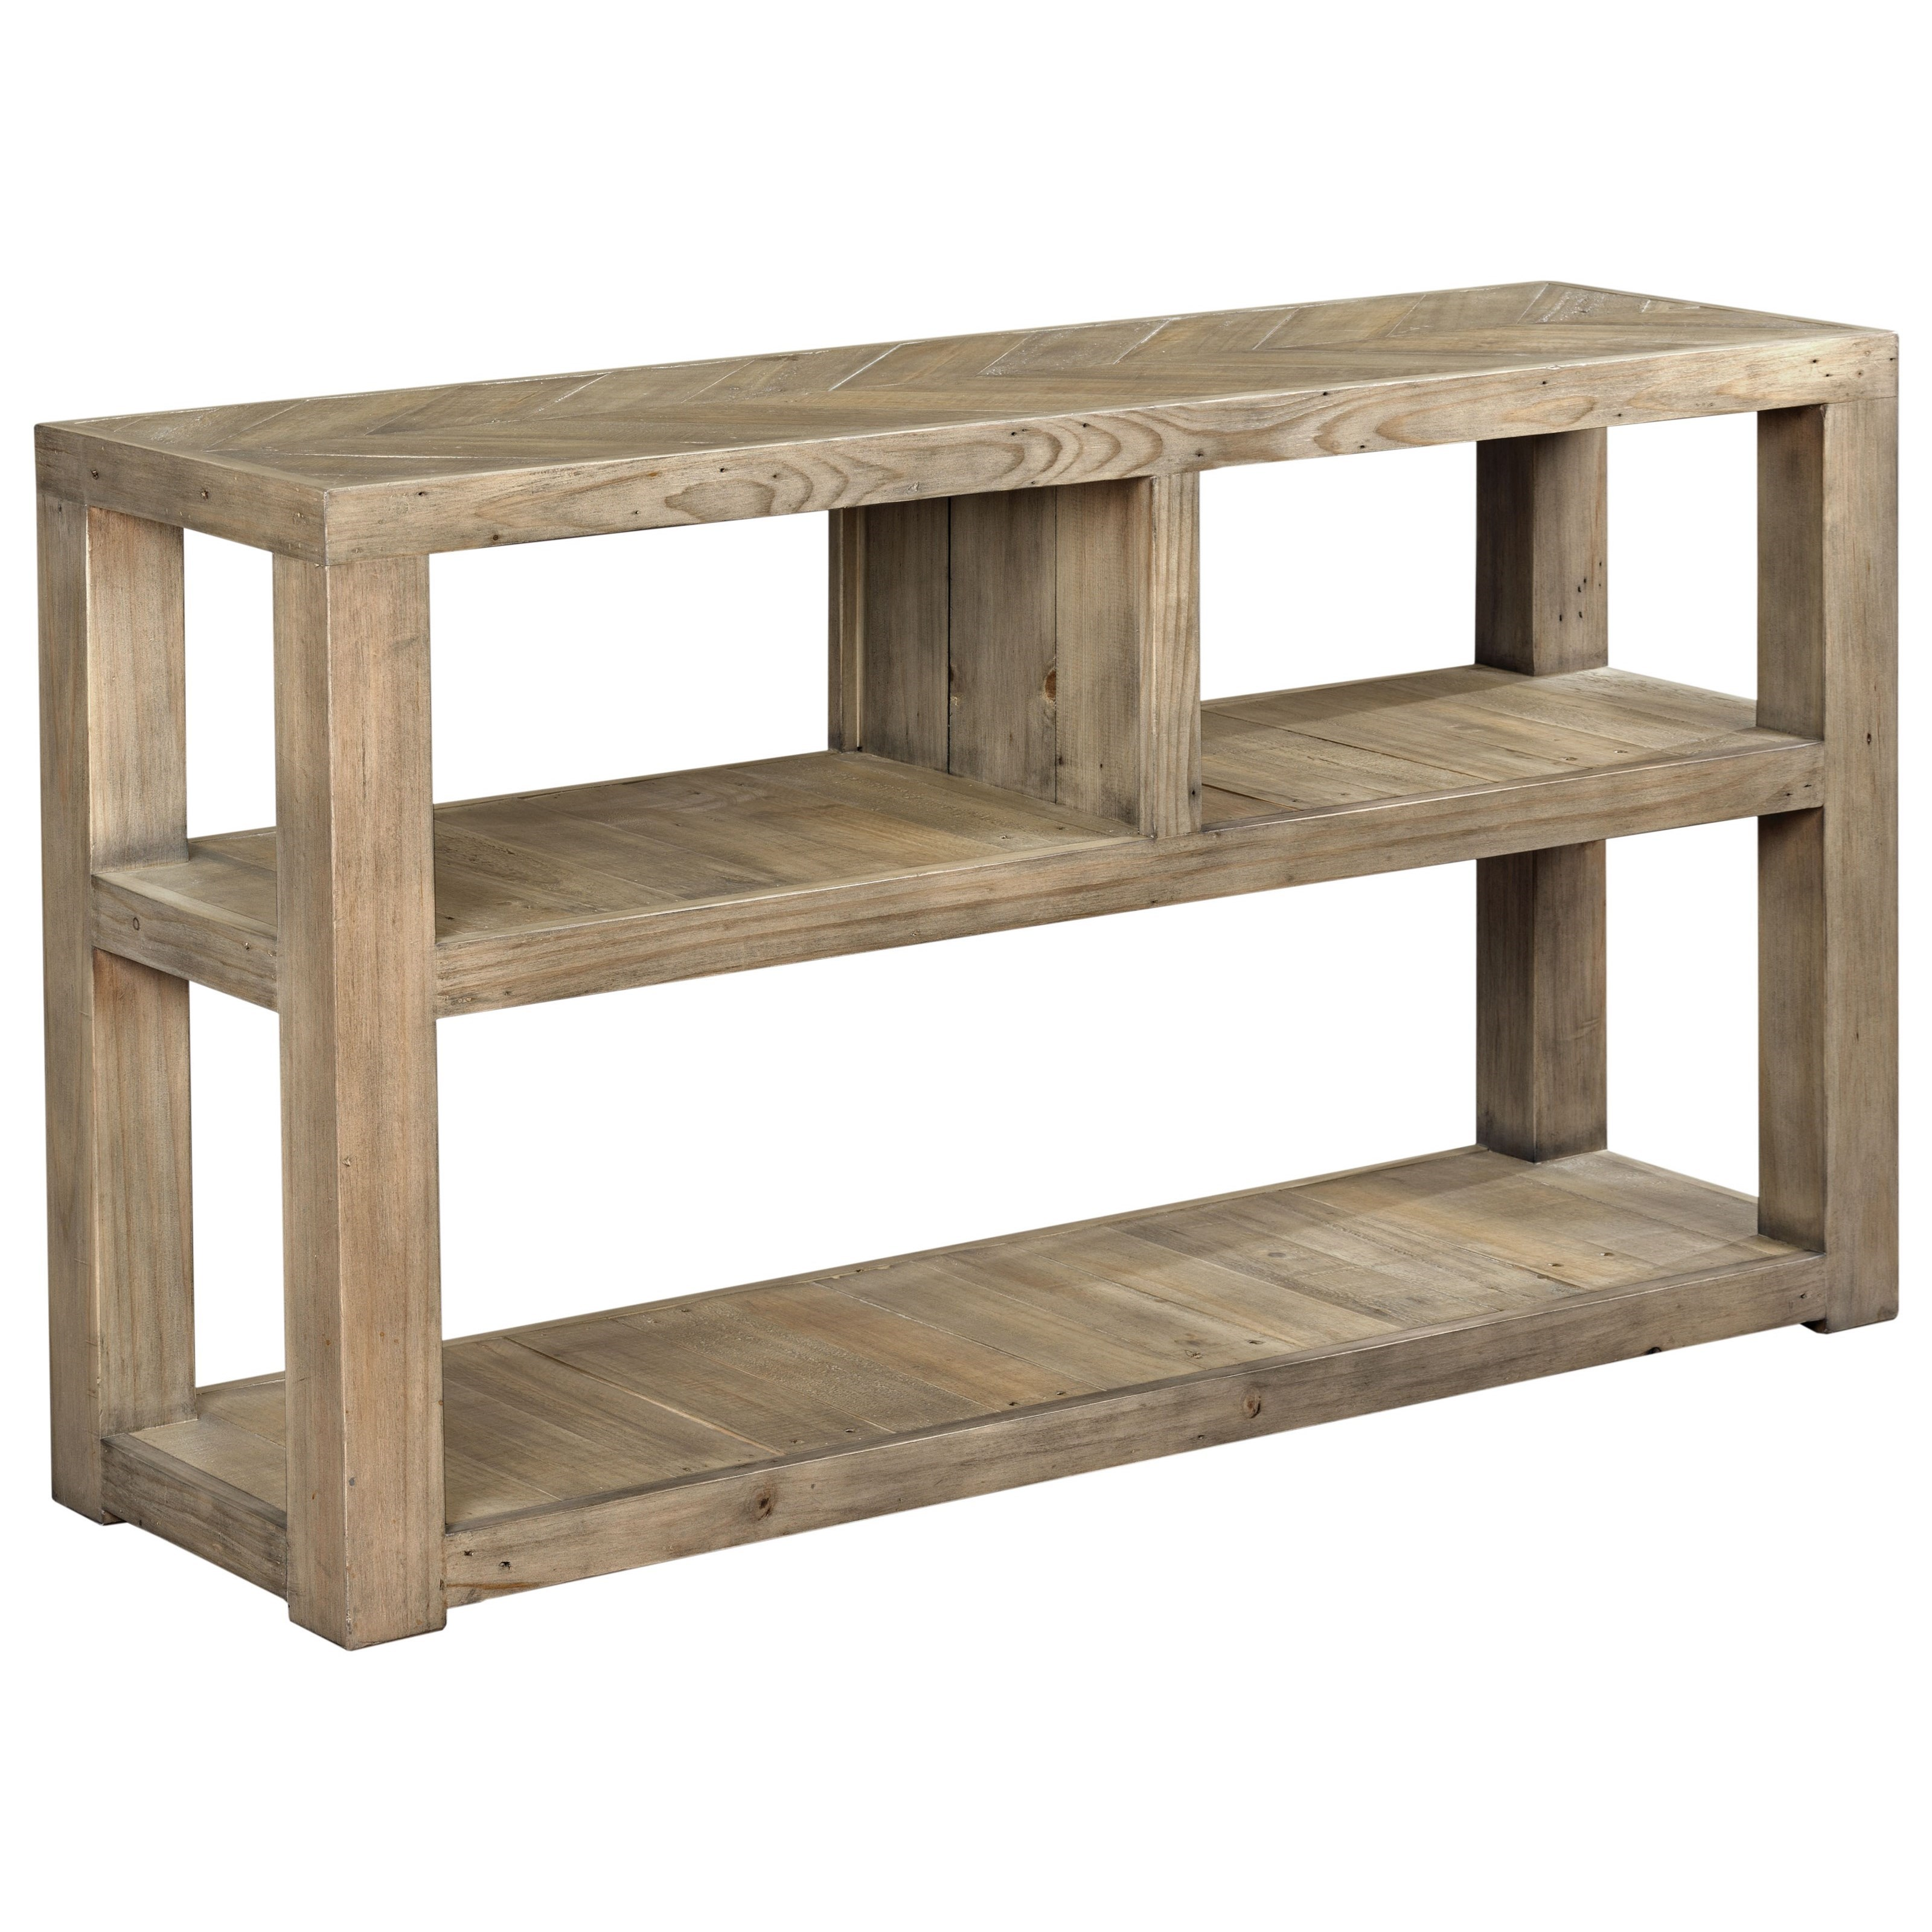 Reclamation Place Sofa Table by Hammary at HomeWorld Furniture